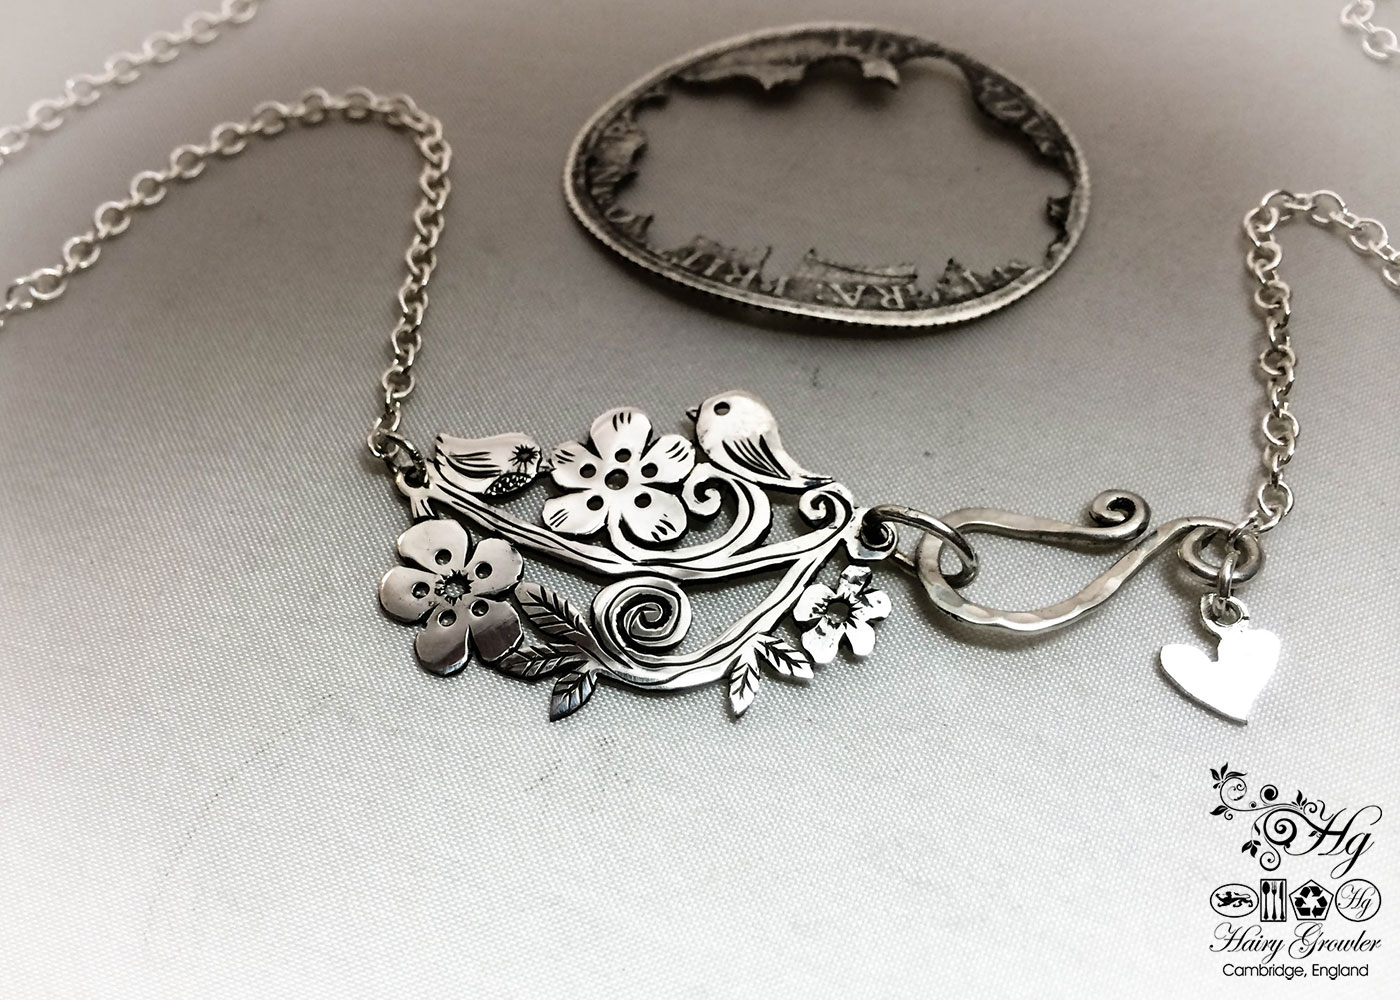 Handmade, recycled, sterling silver, tweet necklace being handmade